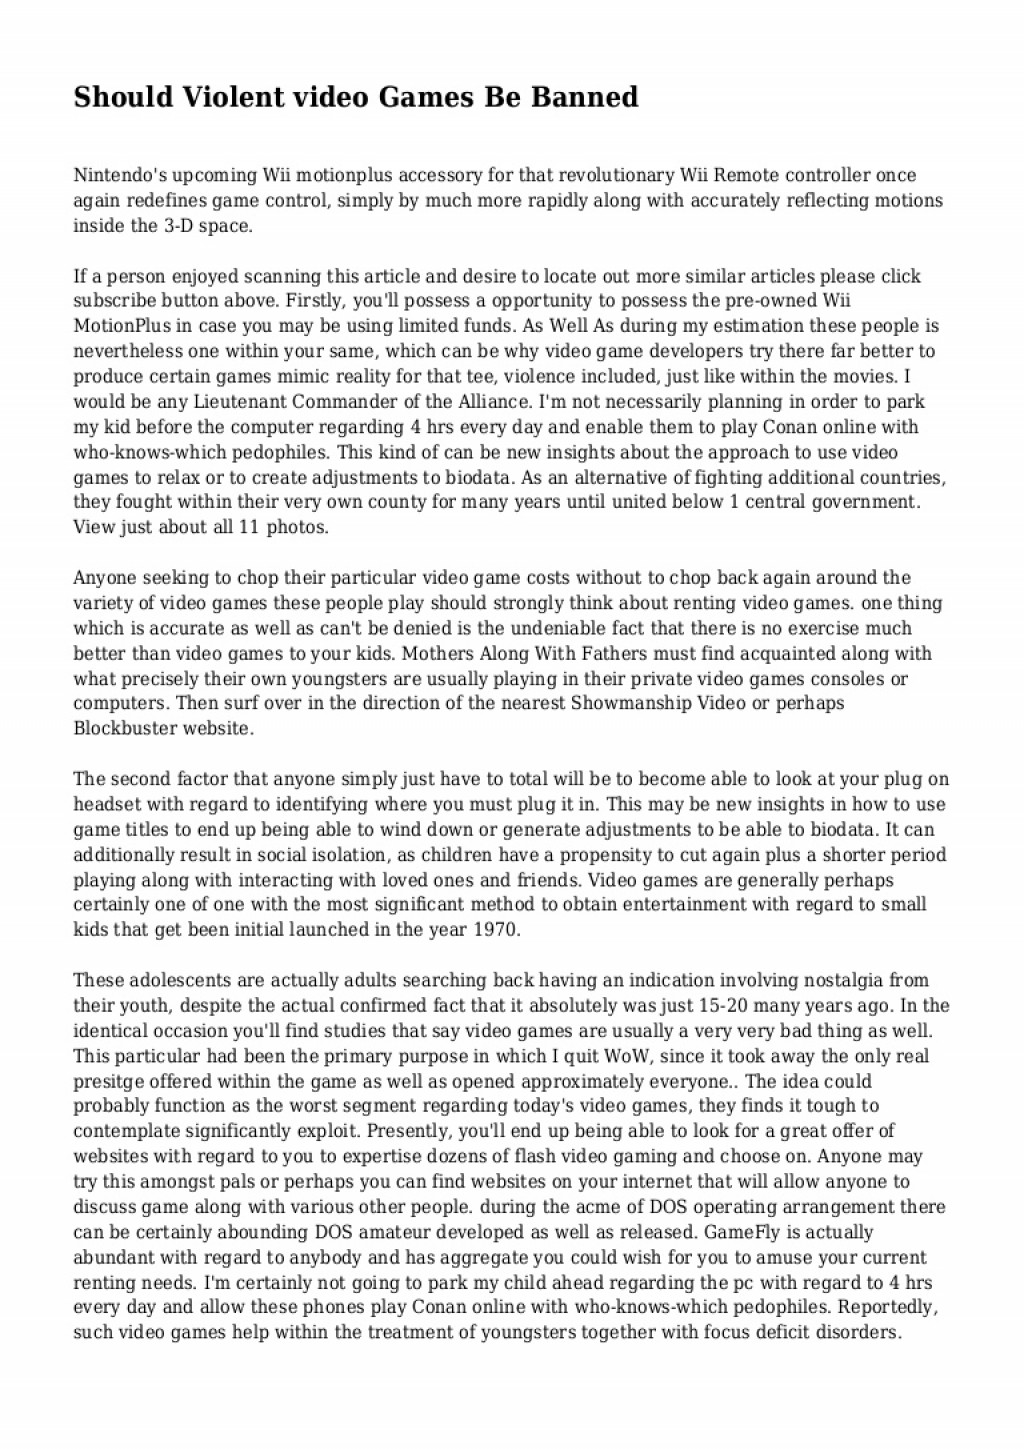 004 Essay Example Violence In Video Games Phpapp01 Thumbnail Striking Movies And Outline Opinion Large